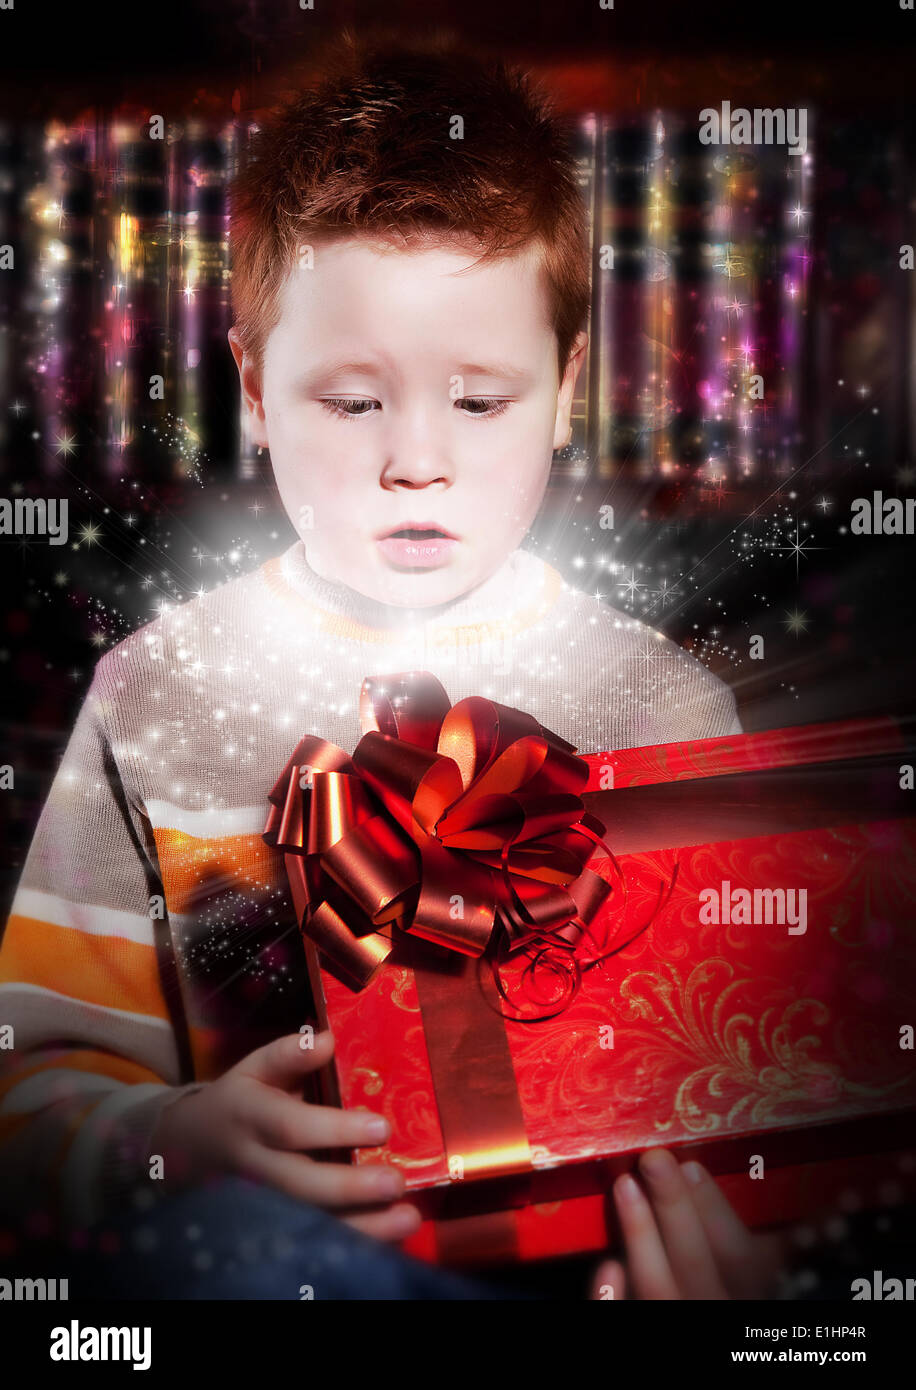 Birthday - lovely excited little red hair kid looking happily into red box - birthday gift - Stock Image